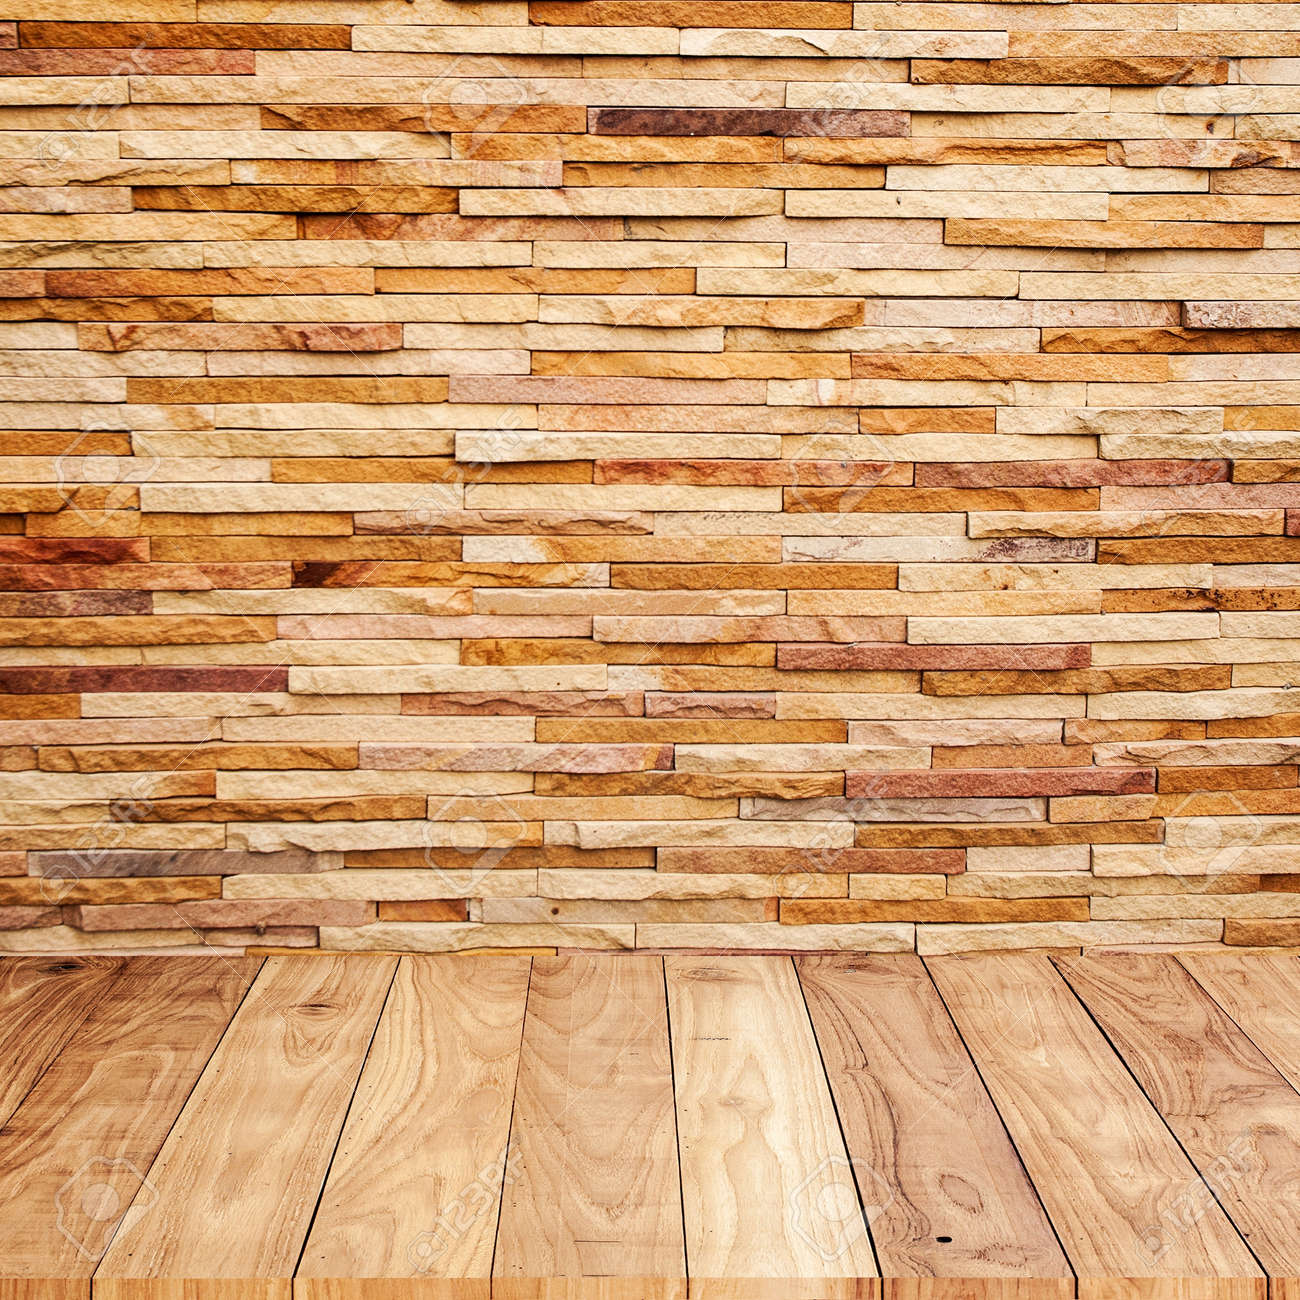 Brick wall with wooden floor background texture Stock Photo - 19726705 - Brick Wall With Wooden Floor Background Texture Stock Photo